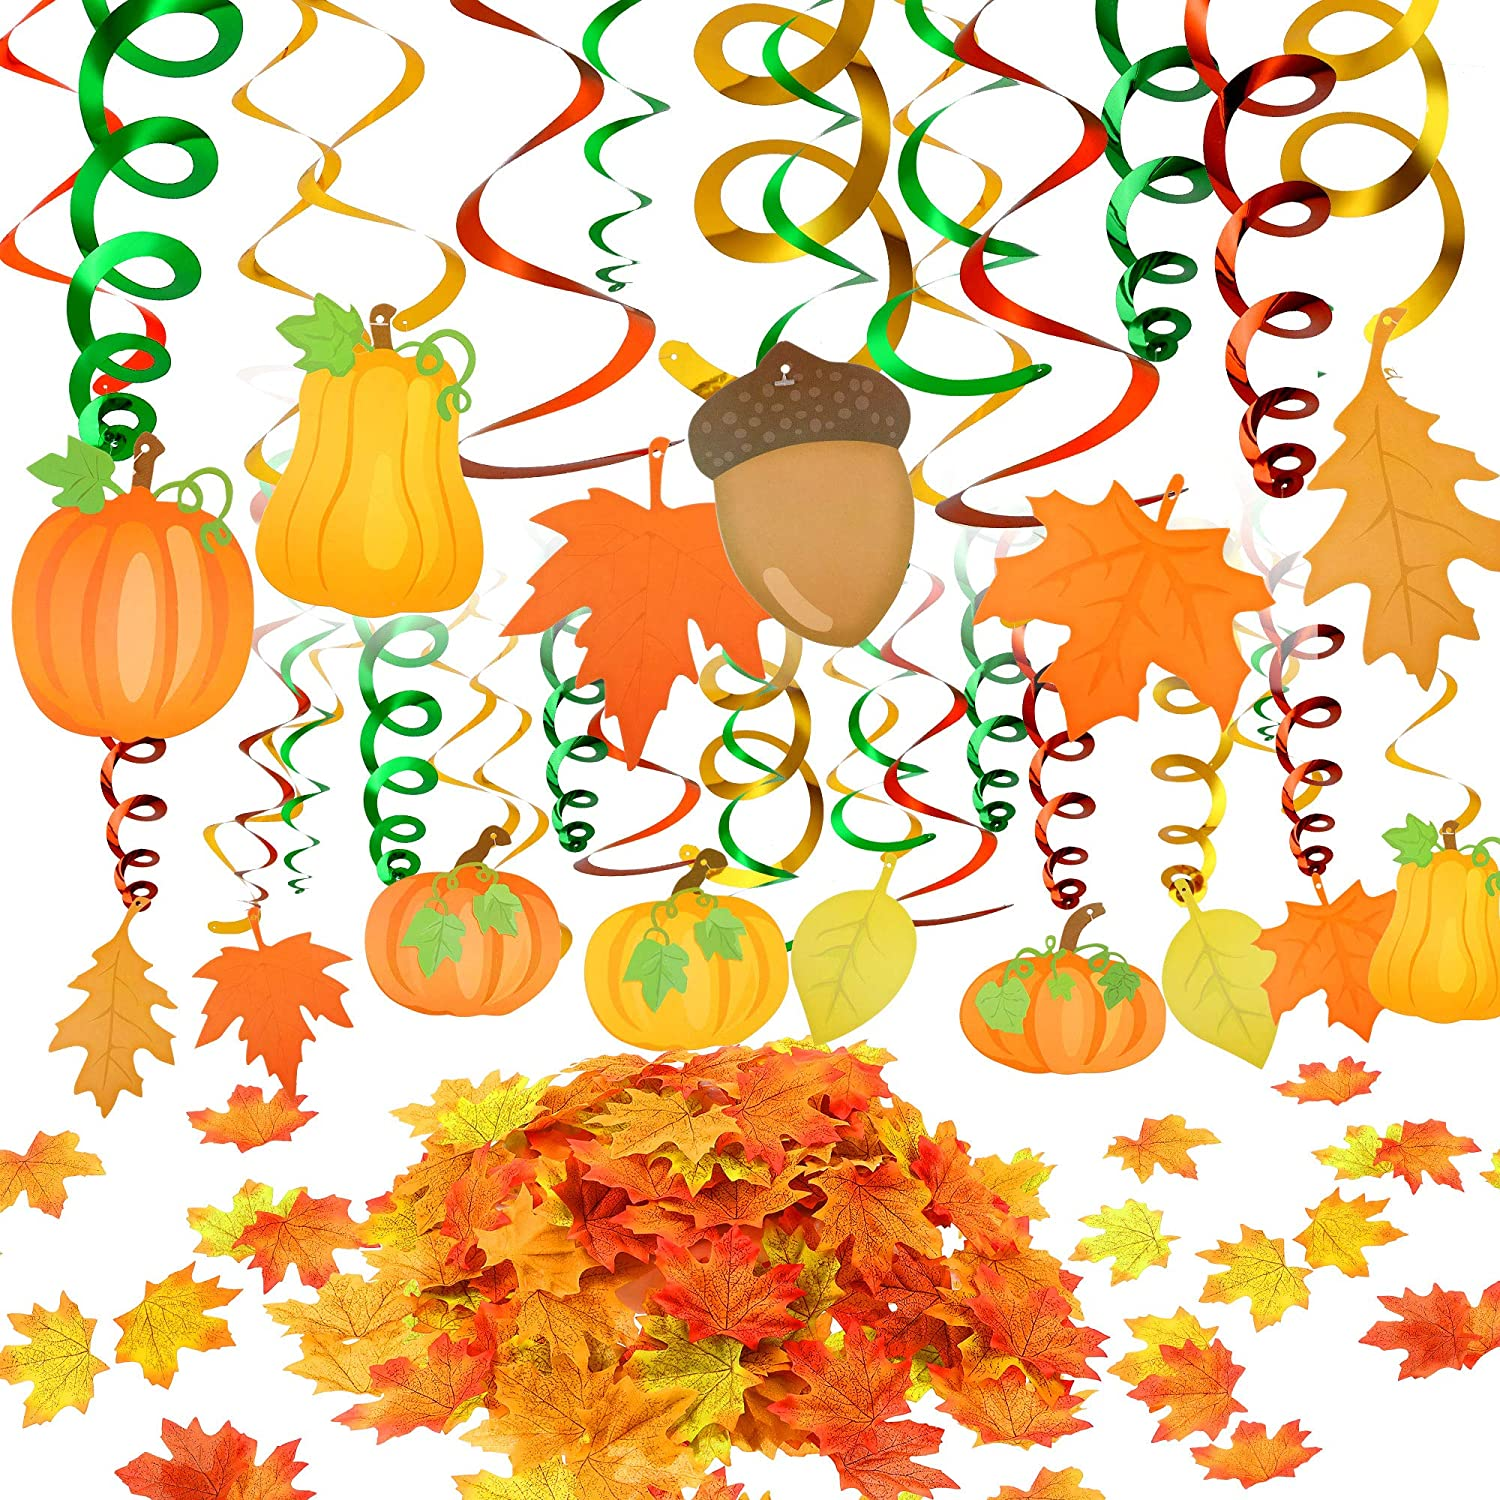 120 Pieces Fall Hanging Swirl Thanksgiving Decorations and Artificial Fall Maple Leaves Kit, Pumpkin and Maple Leaf Fall Themed Decorations for Autumn Birthday Outdoor Garden Home Office